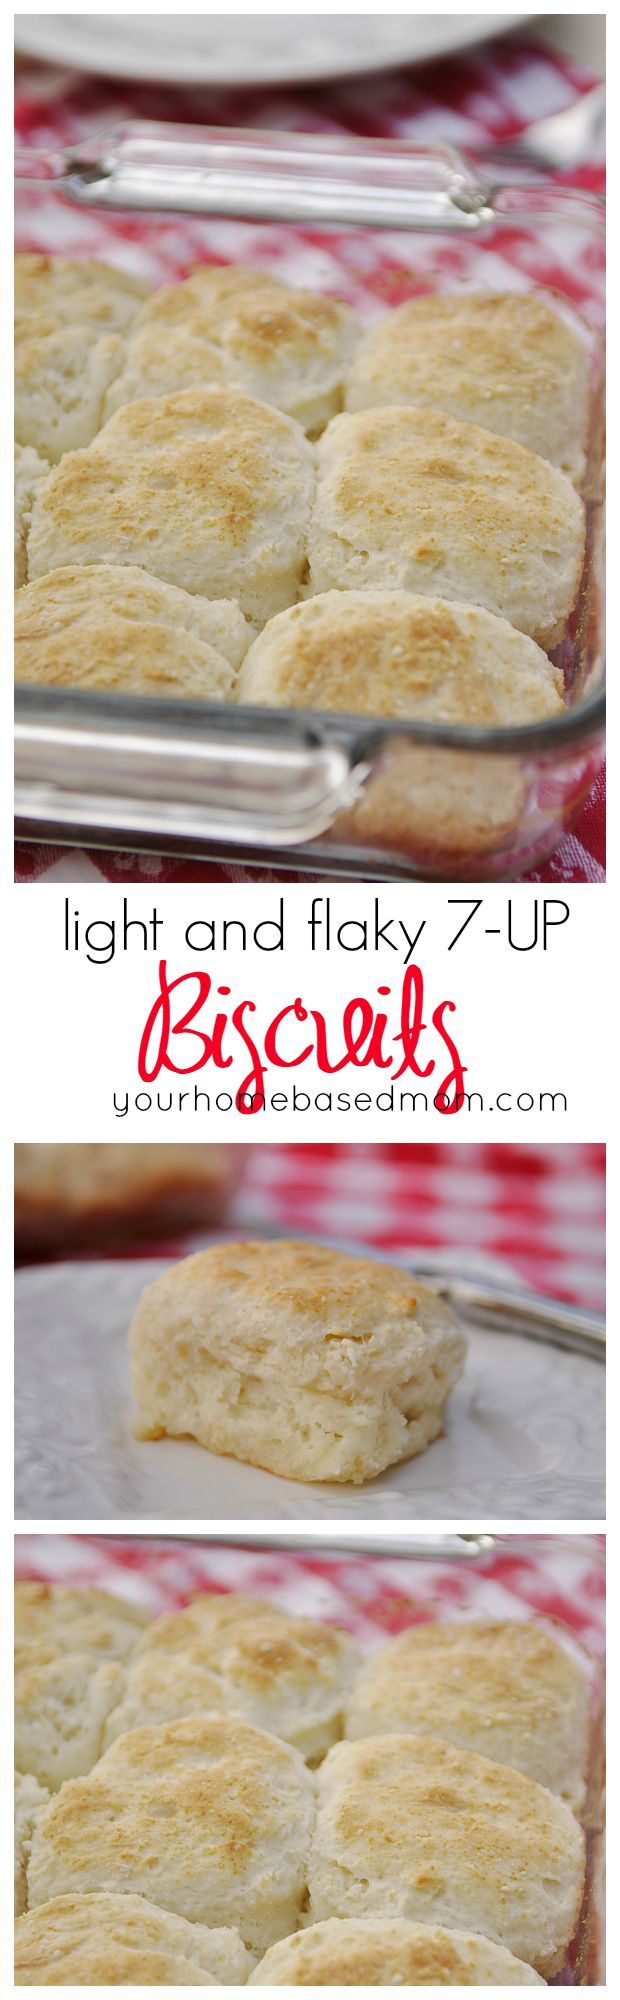 Light and Flaky Biscuits are made with 7-Up! Easy dinner roll recipe!